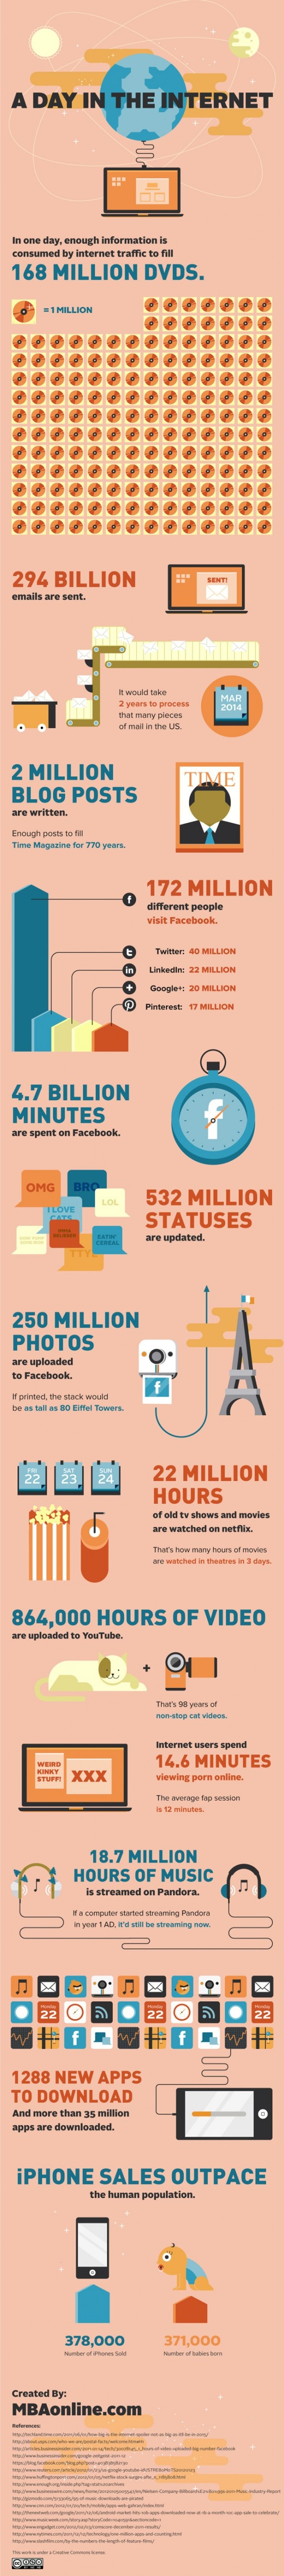 A day in the internet in numbers. Pretty impressive. (c) MBAonline.com